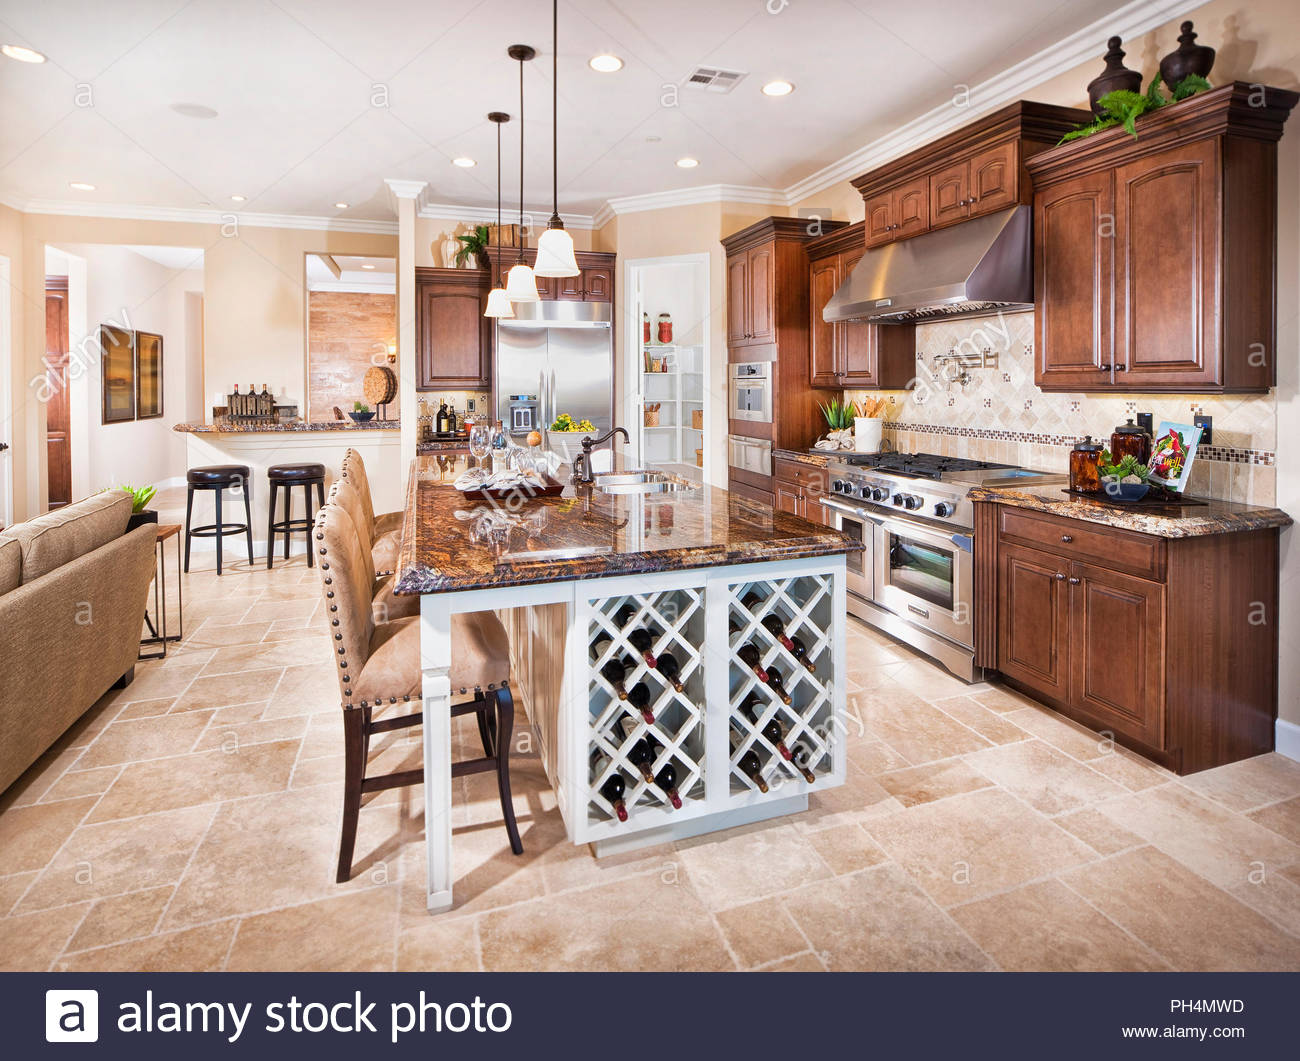 Brown kitchen with stools - Stock Image